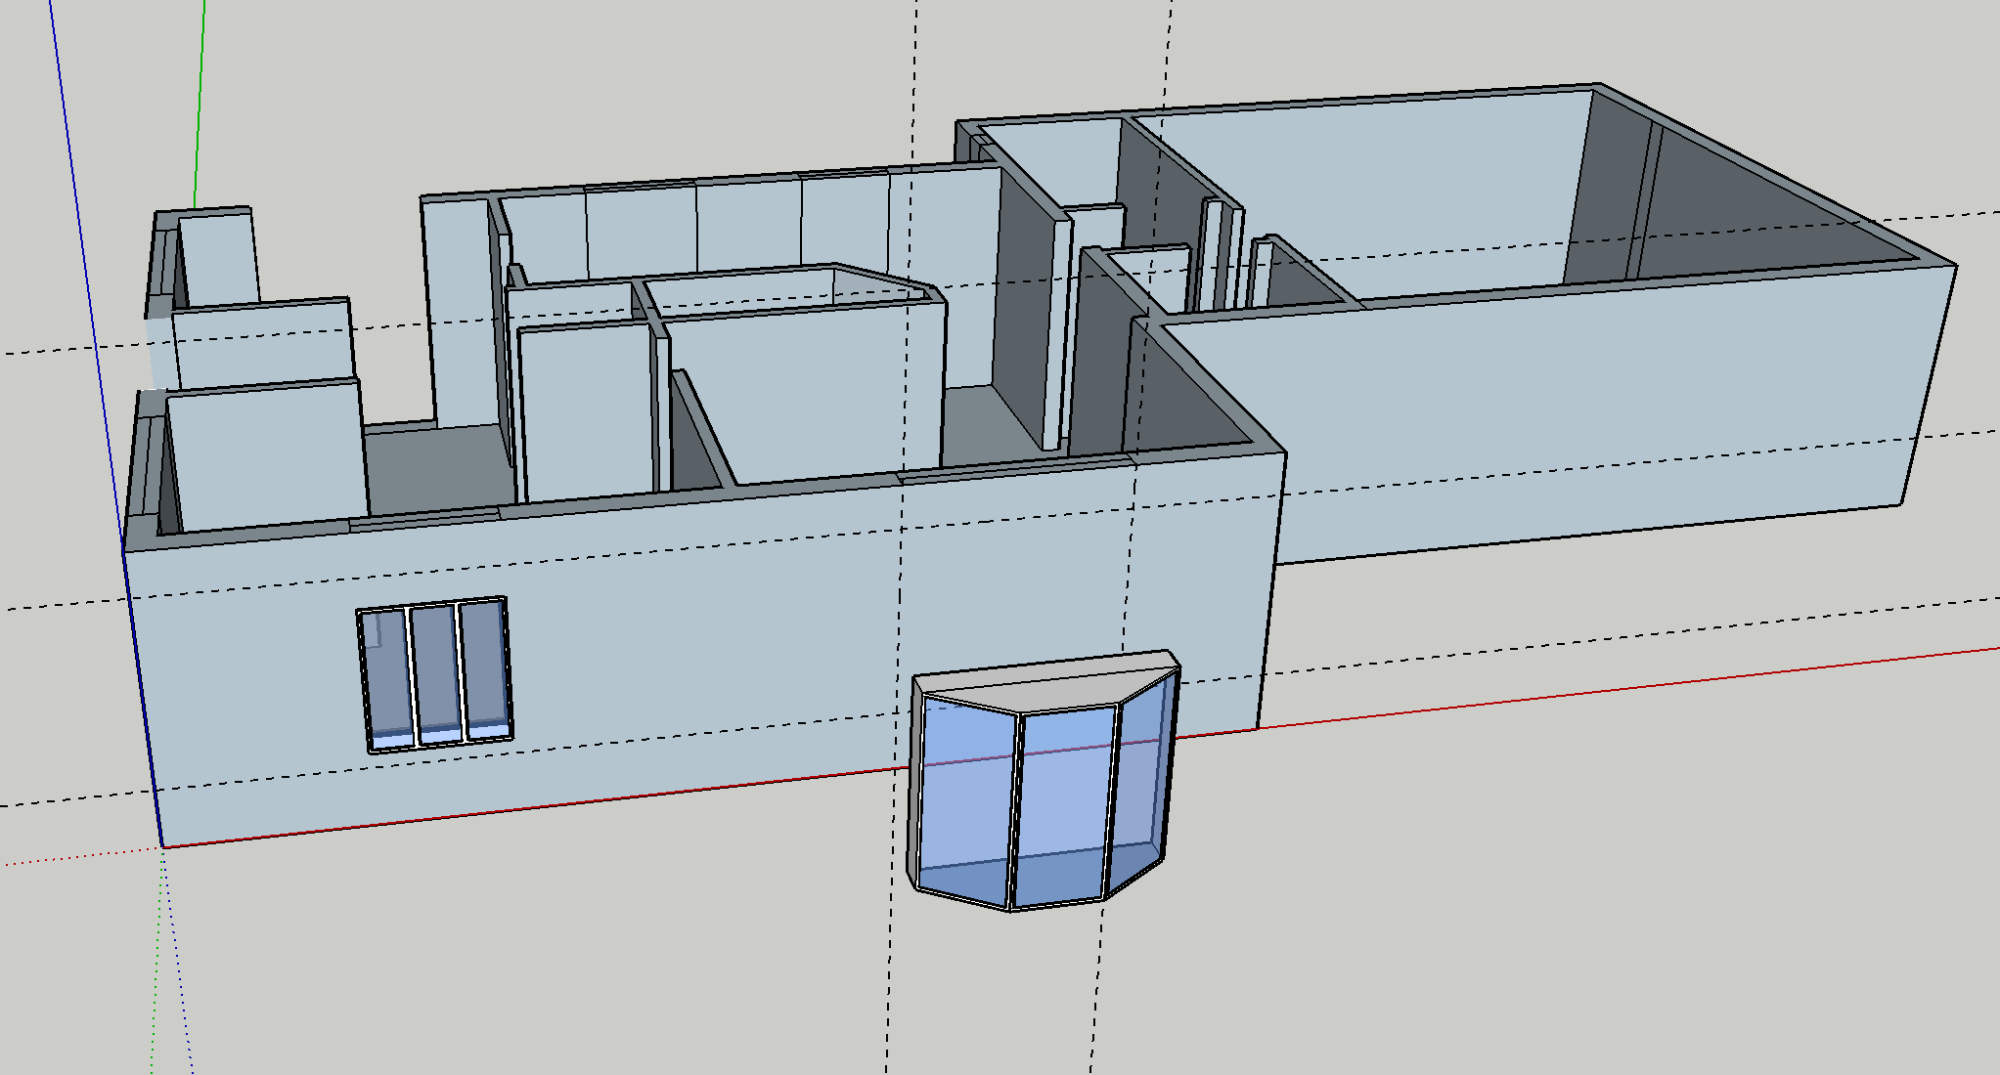 hight resolution of google sketchup example